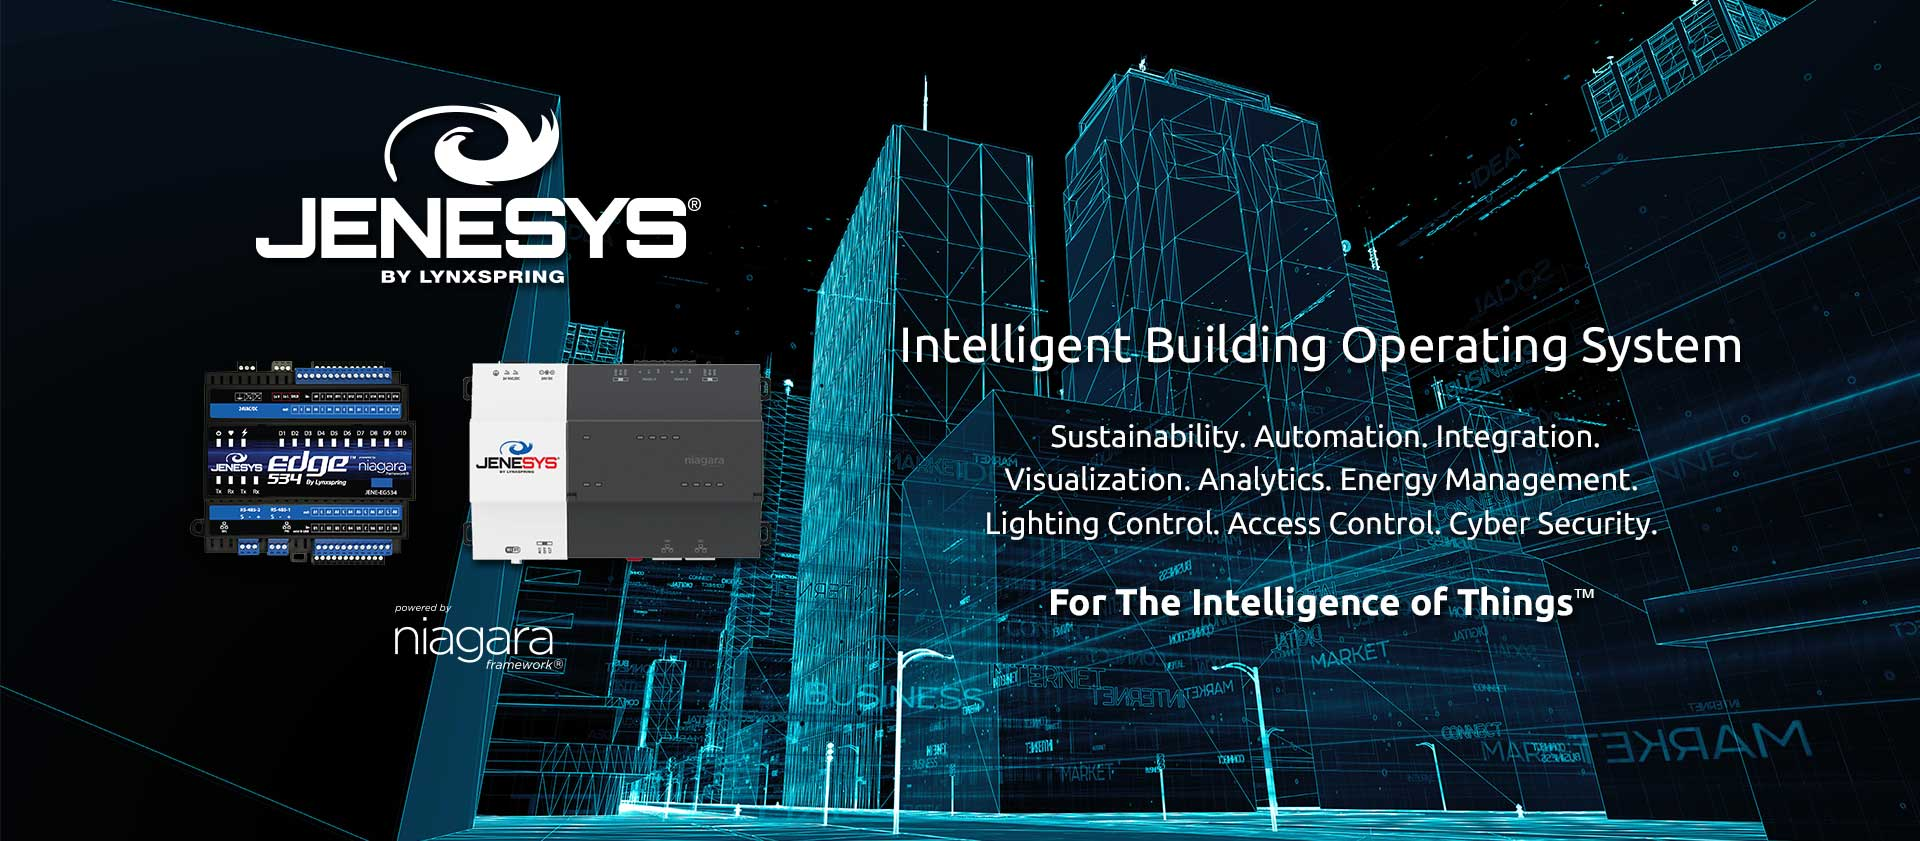 JENEsys Intelligent Building Platform